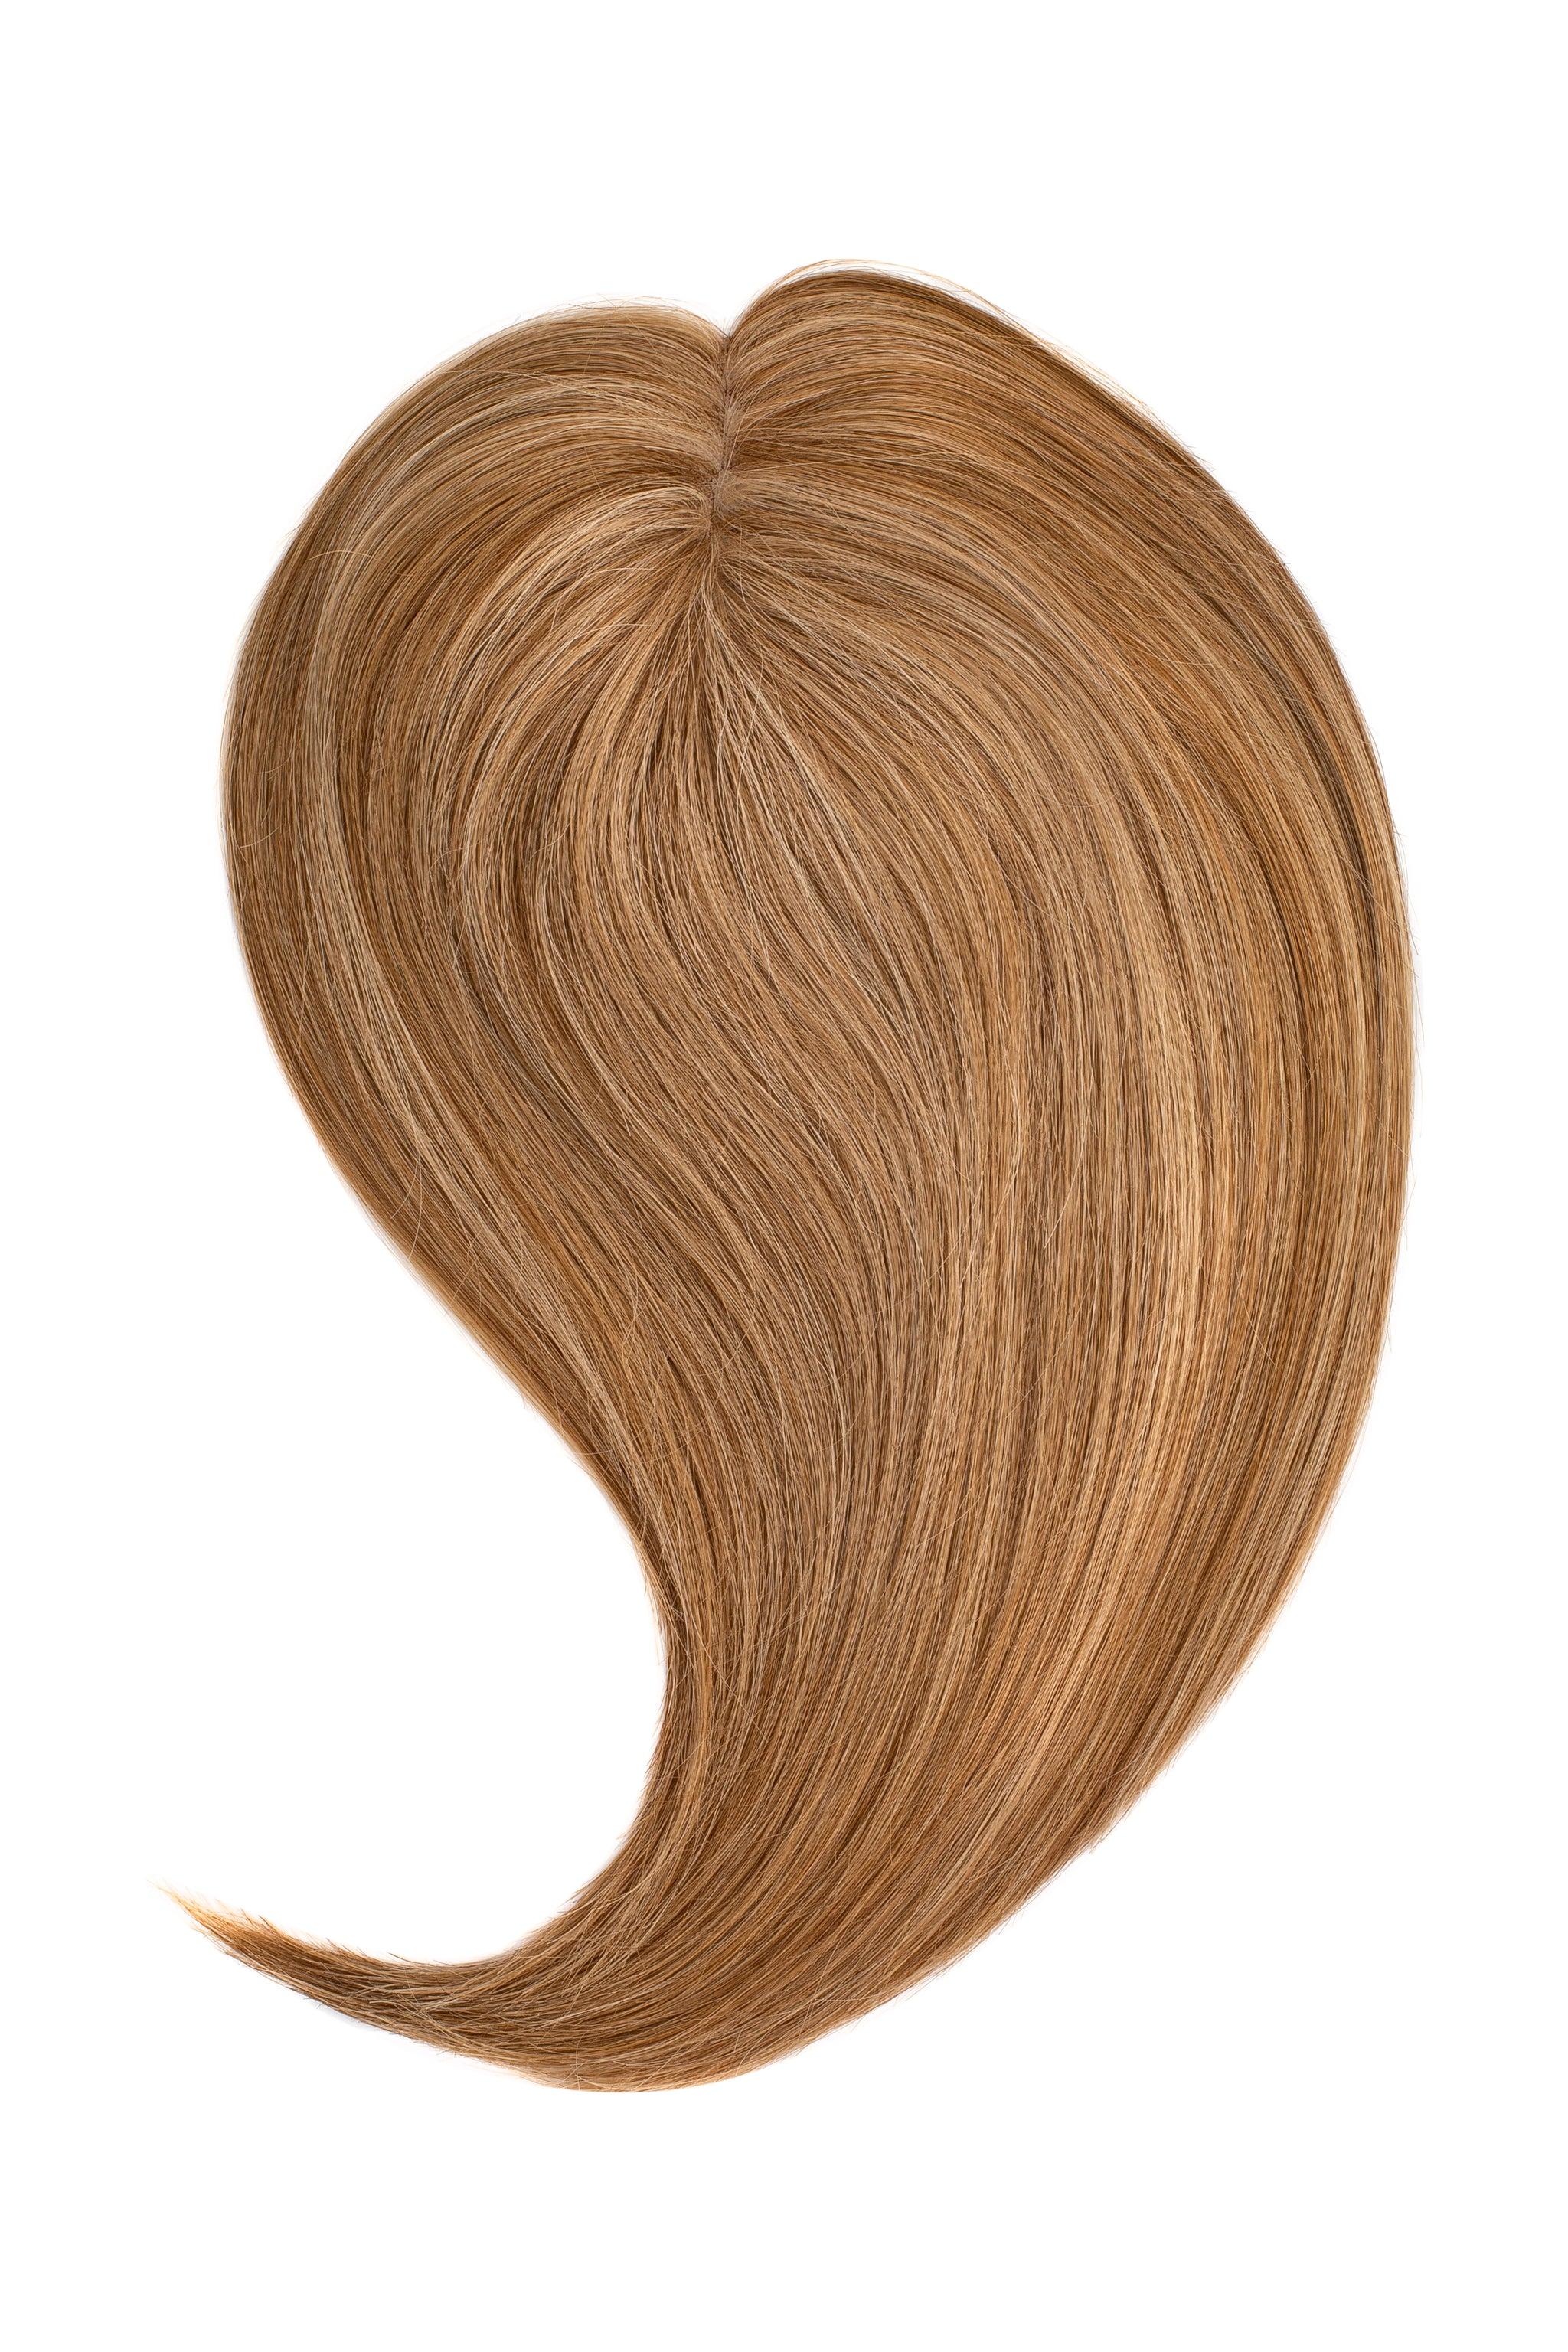 Glam Seamless Extensions Human Hair Invisi Topper for women